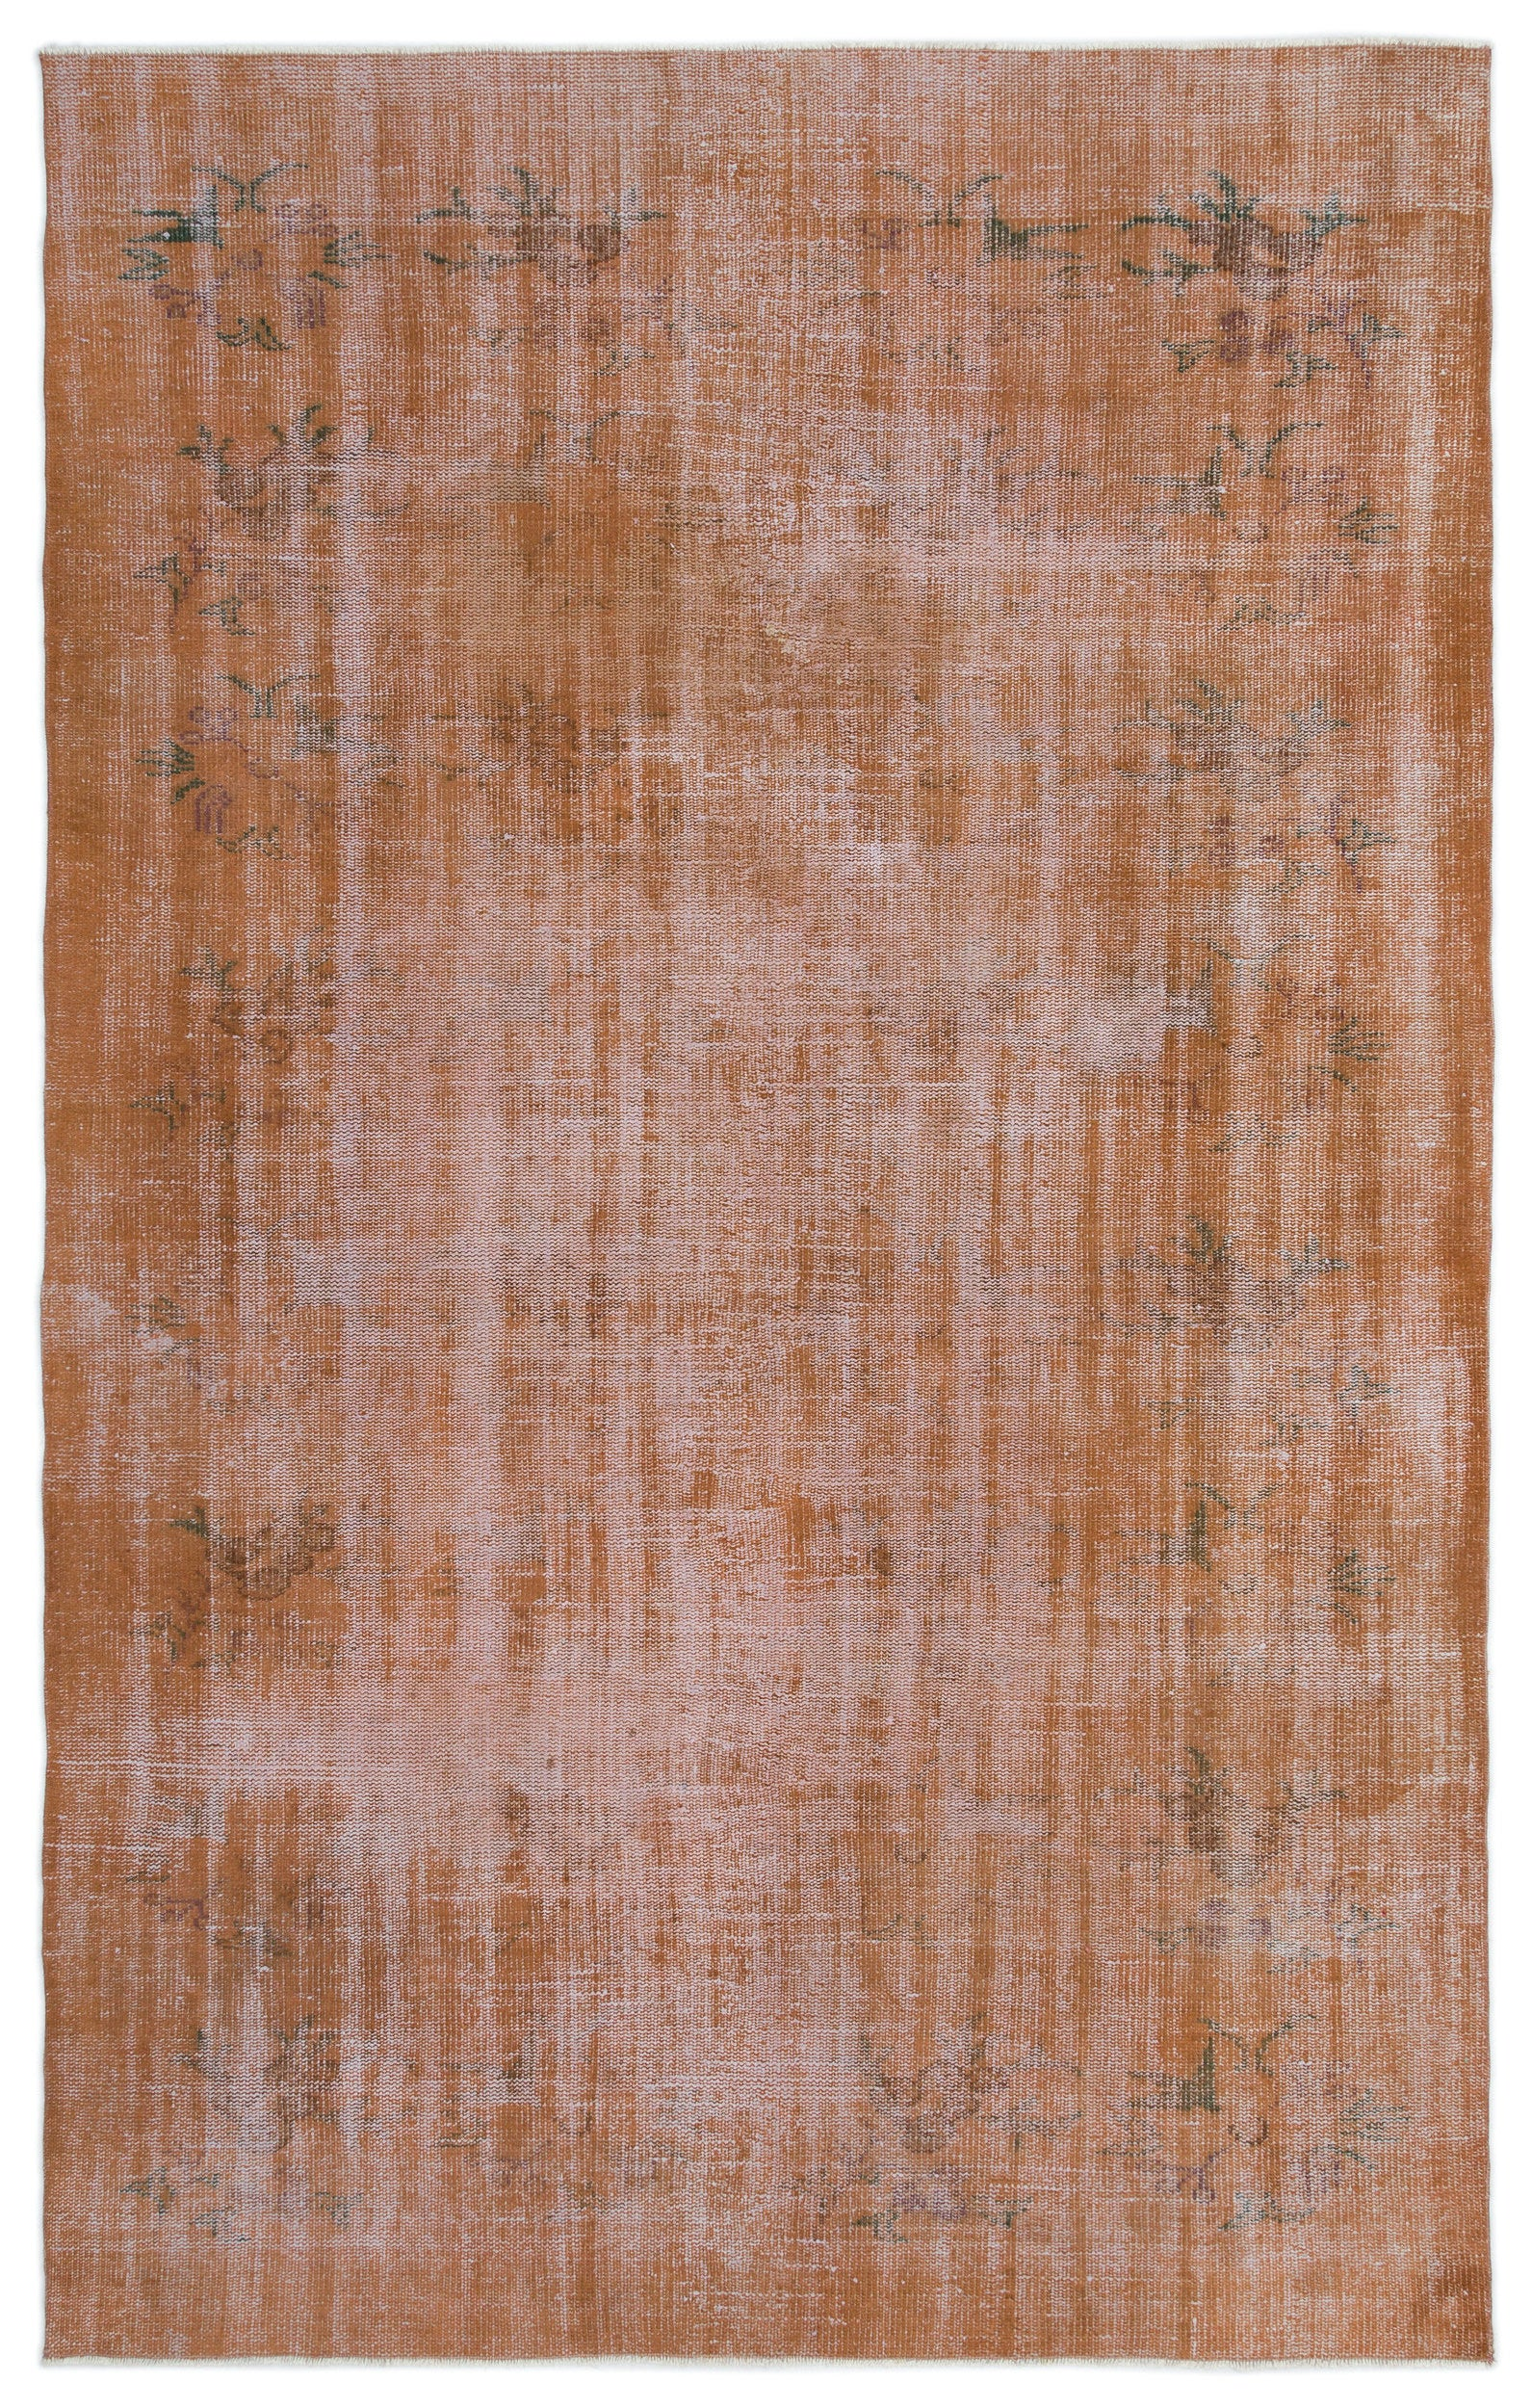 Brown Over Dyed Vintage Rug 5'12'' x 9'4'' ft 182 x 285 cm